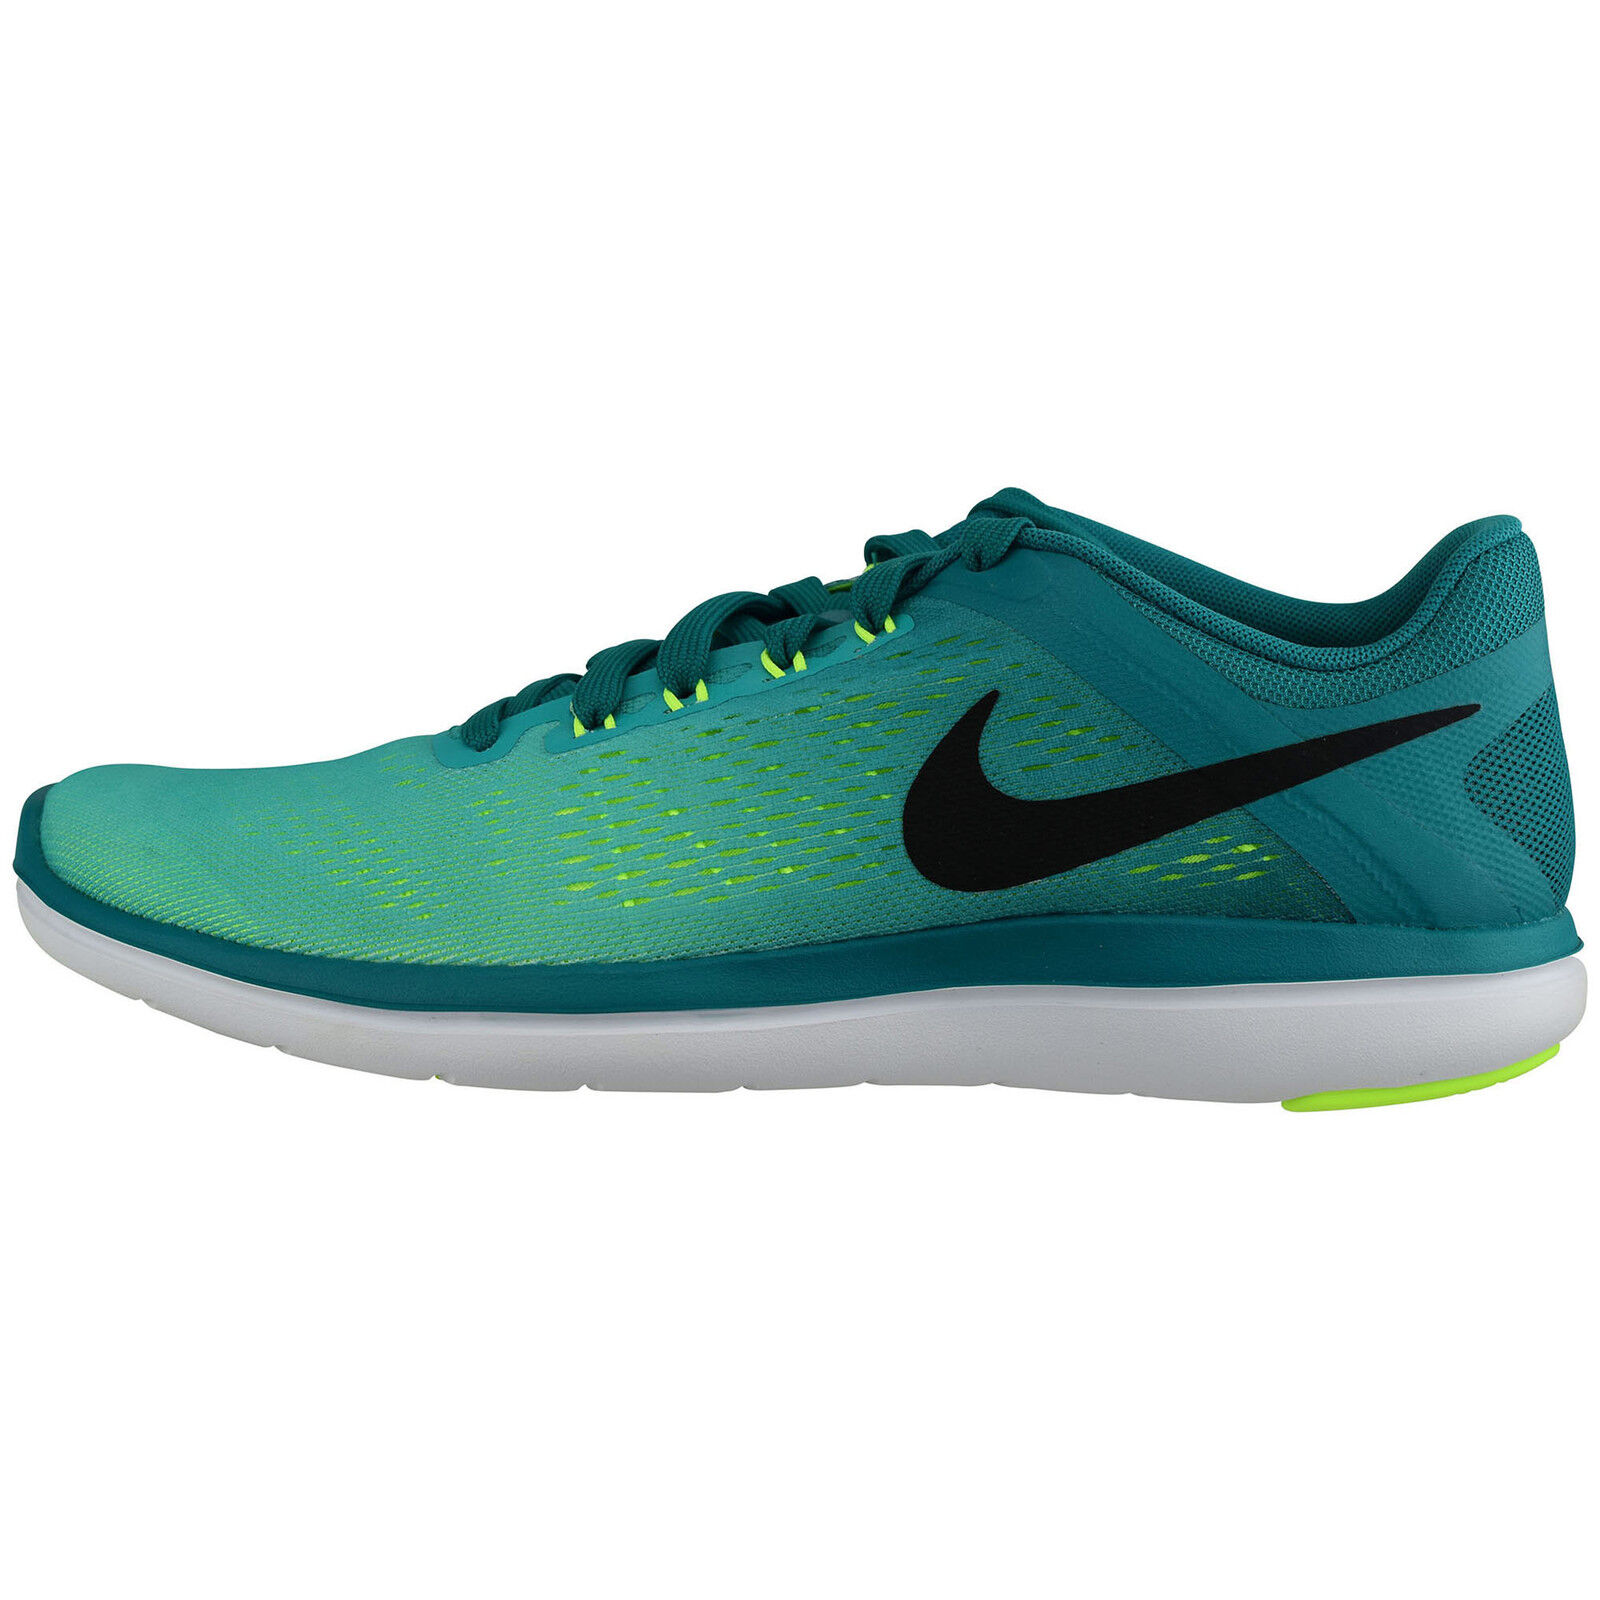 Men's Nike Flex 2016 Rn 830369-300 Lifestyle Running shoes Casual Trainers